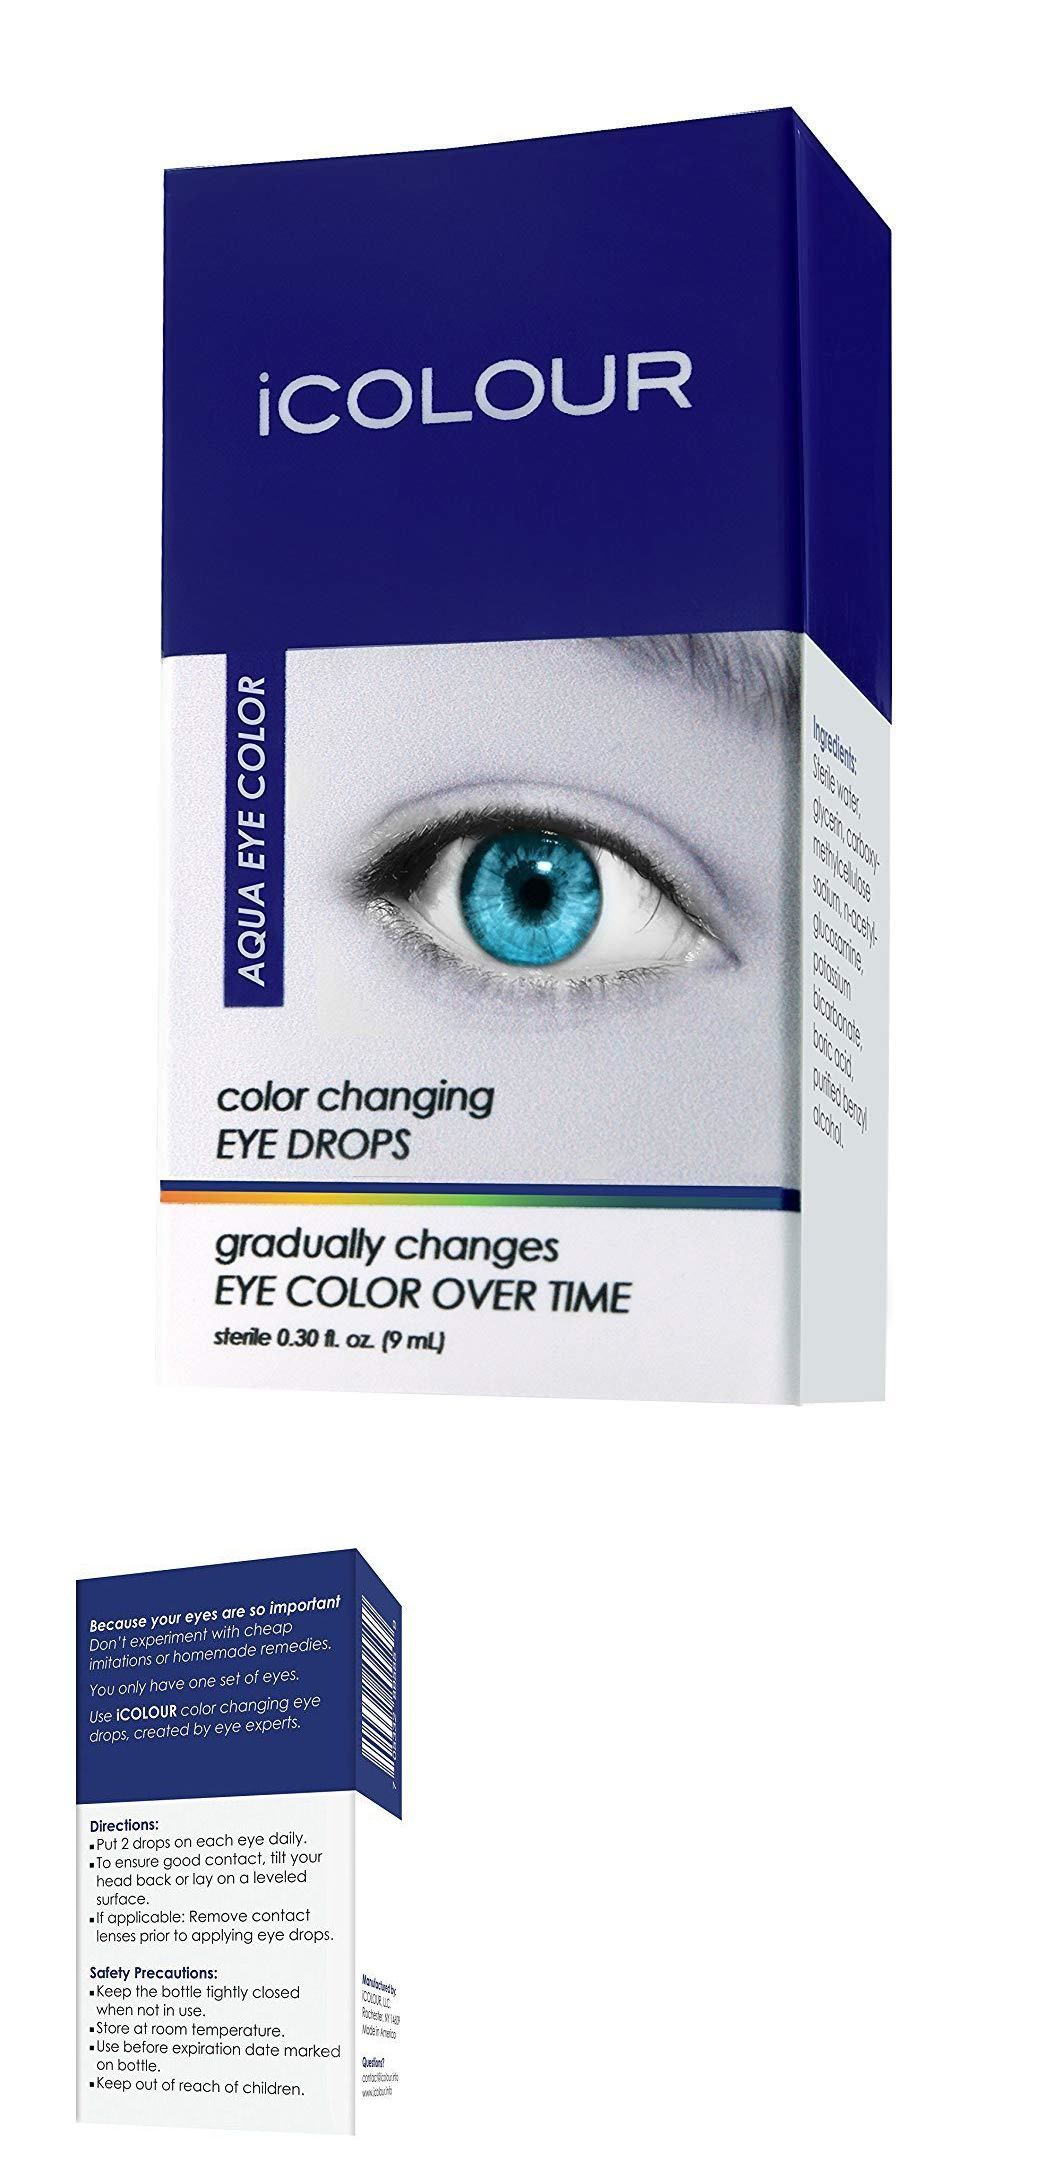 Eye Drops And Wash 122773 Icolour Color Changing Eye Drops Change